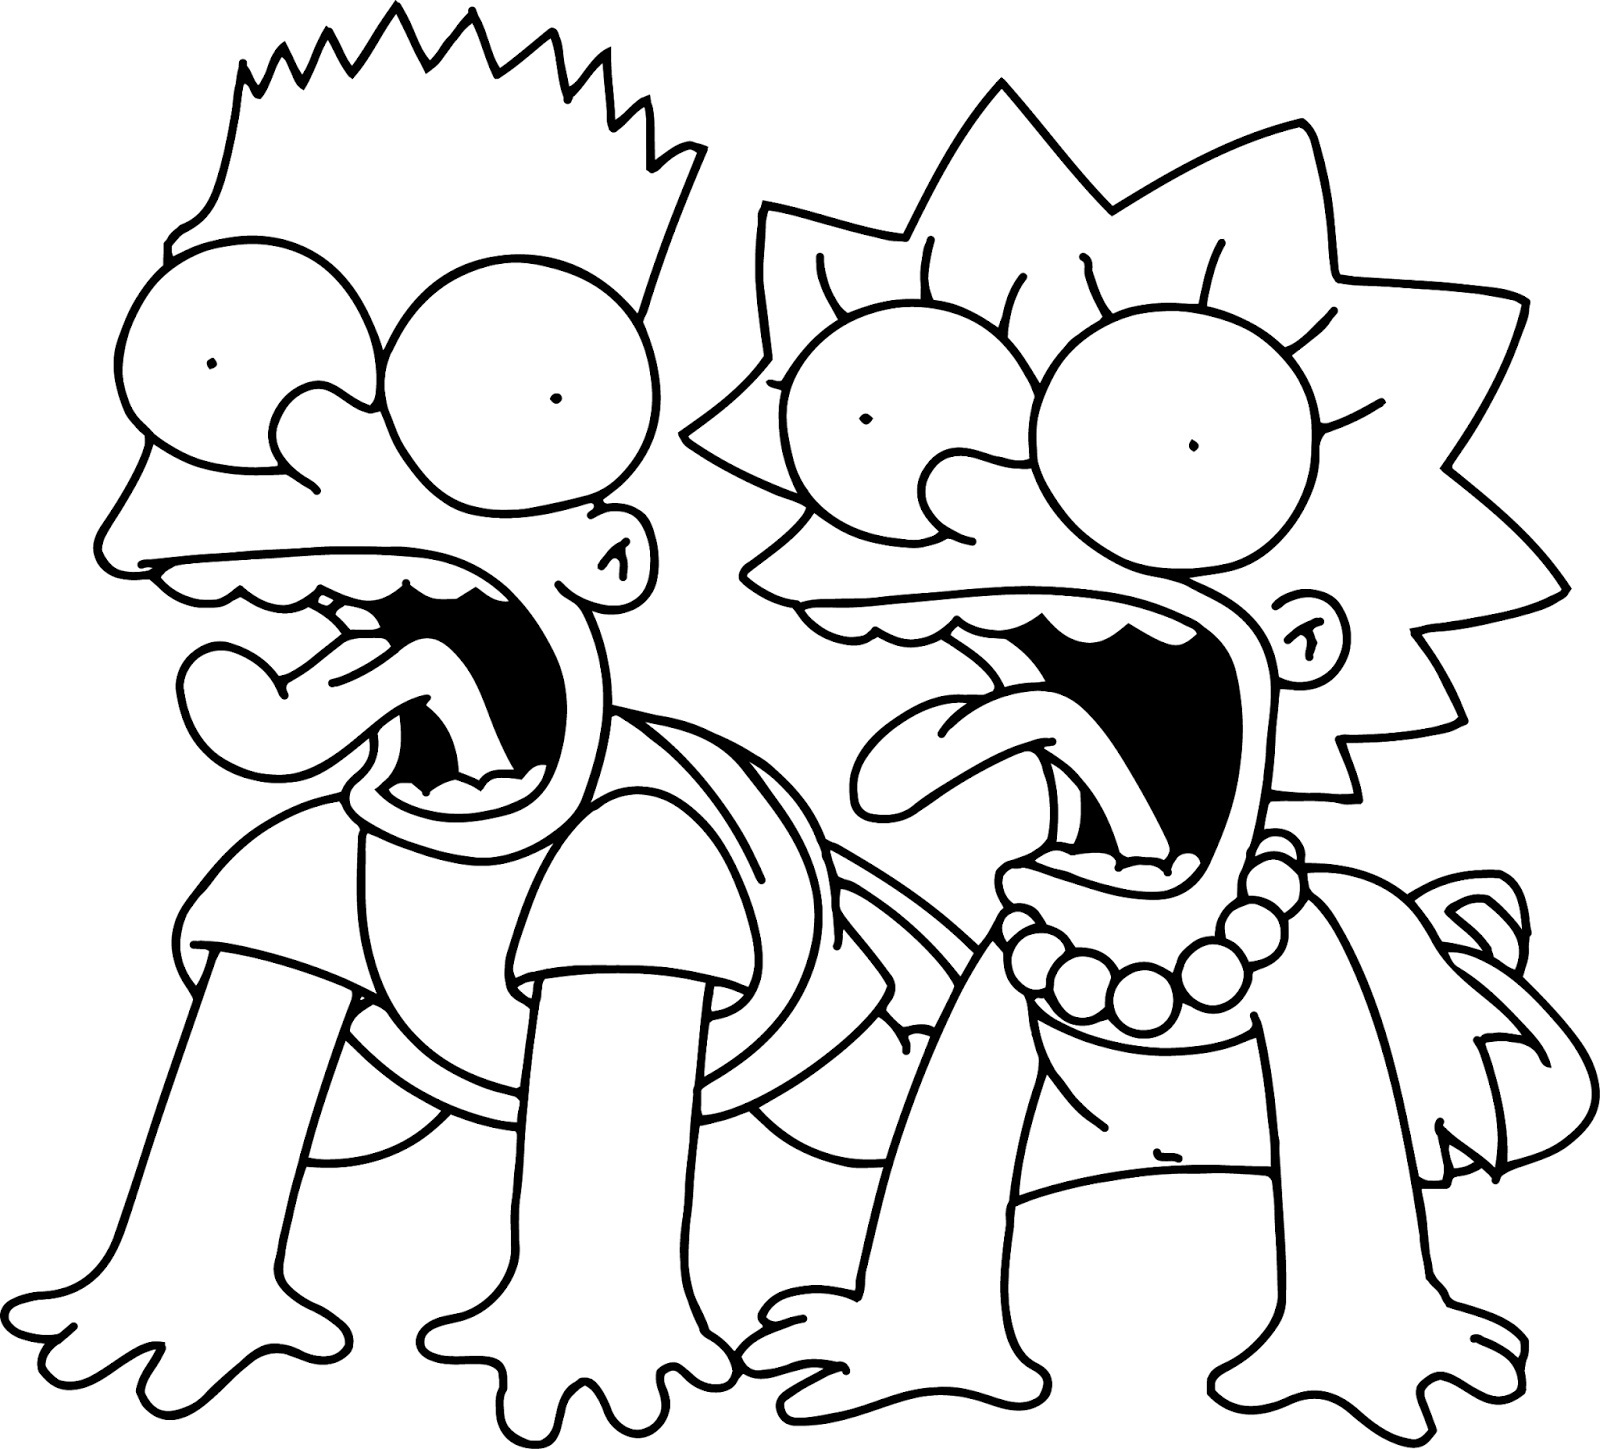 printable simpsons coloring pages | coloring me - Printable Simpsons Coloring Pages